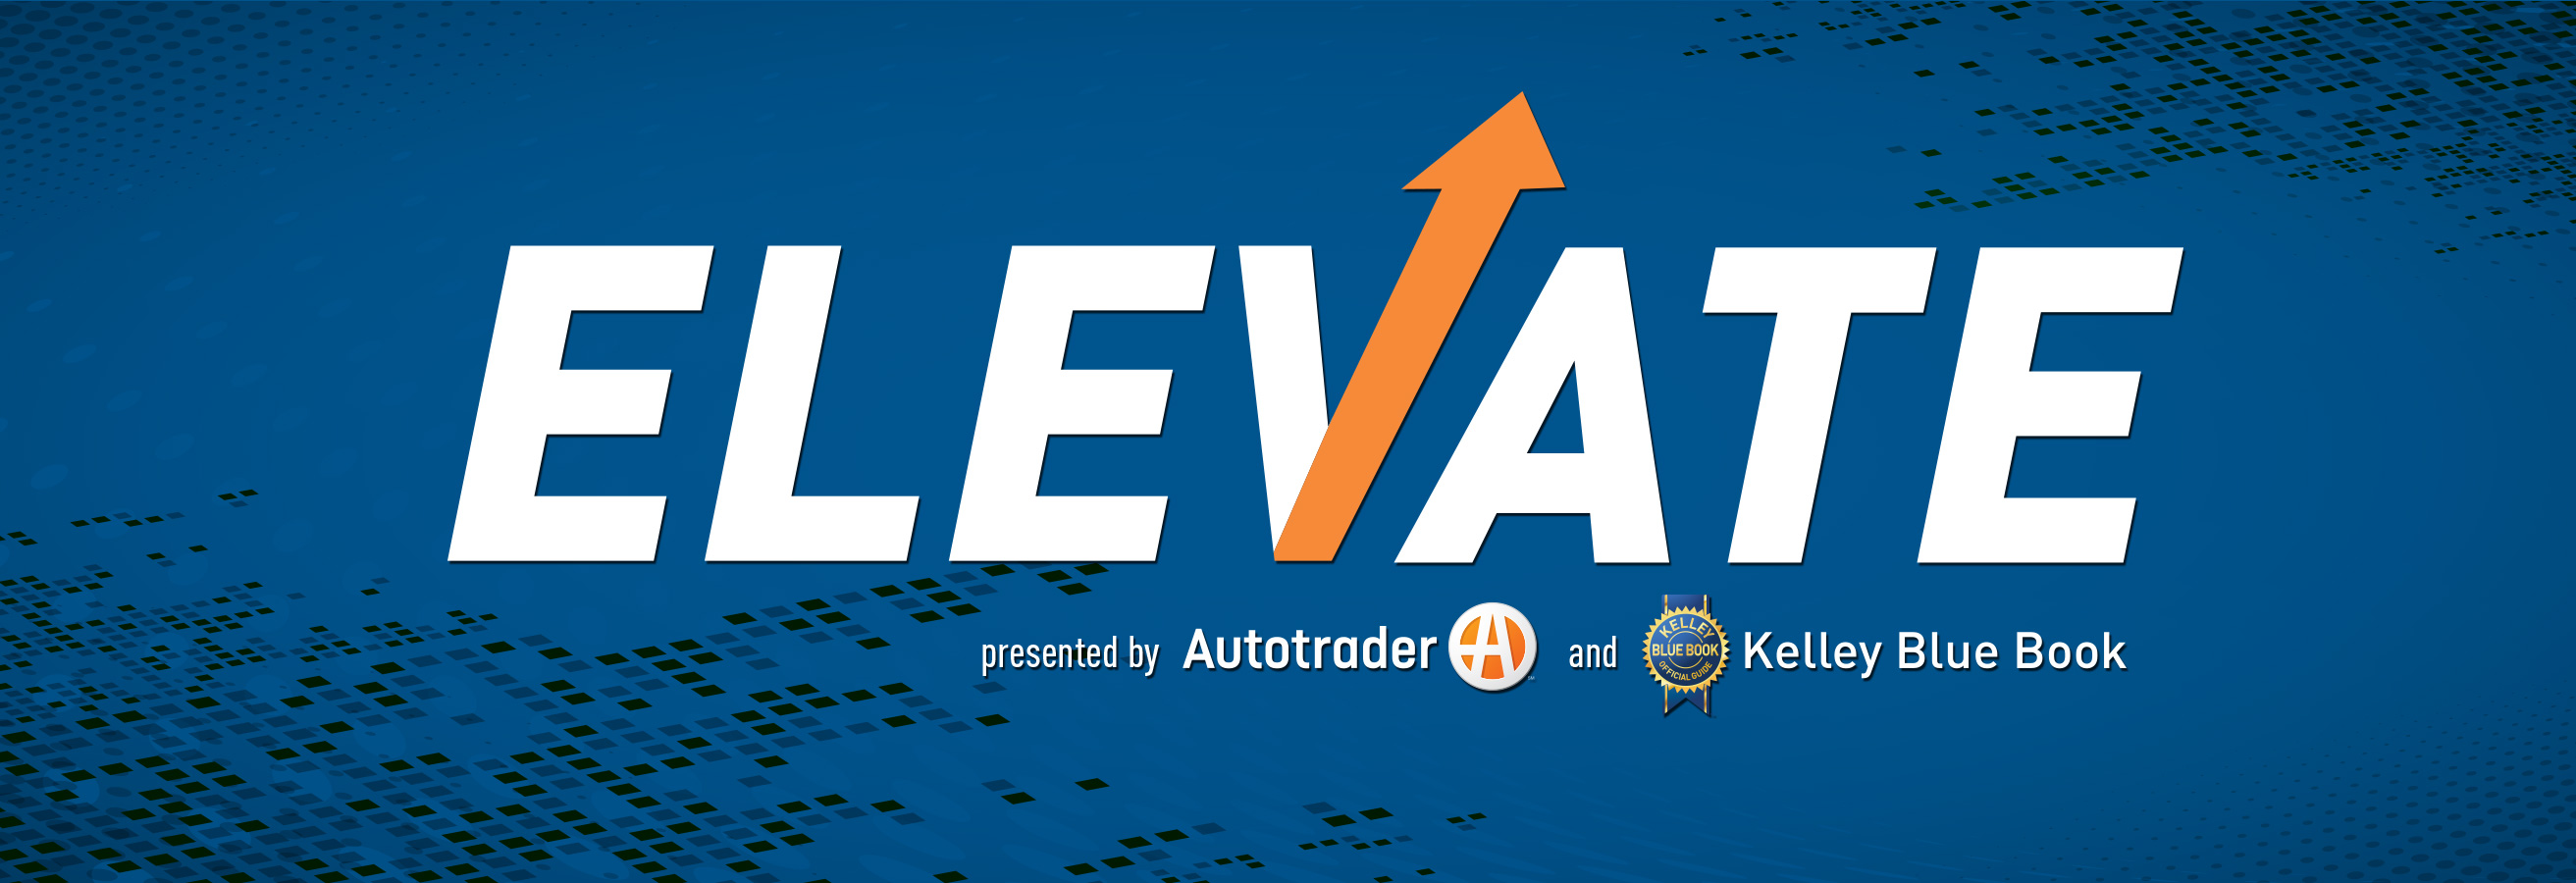 Newark Elevate - Dealer Educational Event